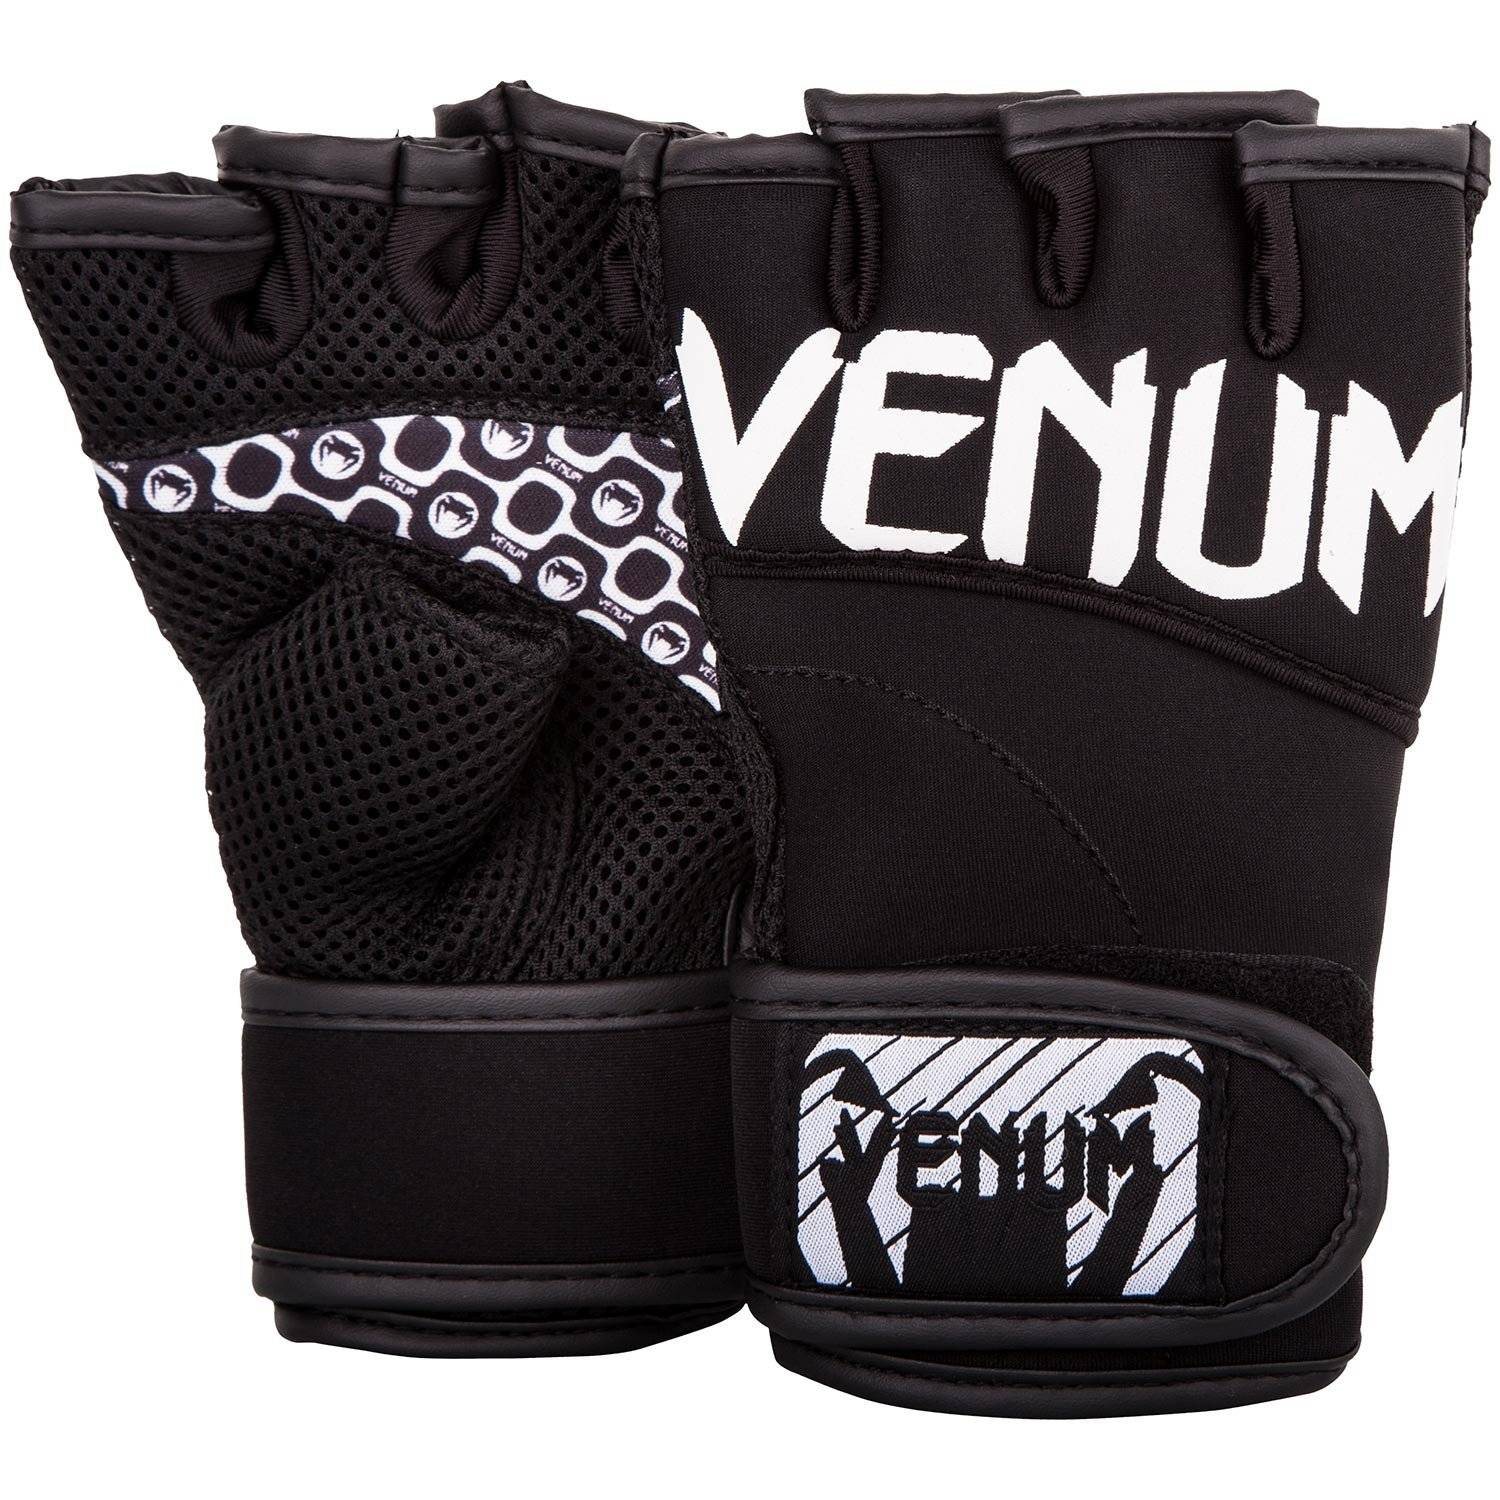 Essential Body Combat Gloves, Support Lightweight Black Elite Essential speed Womens Gloves freedom Light and of Shorts Guard Body Pair.., By Venum